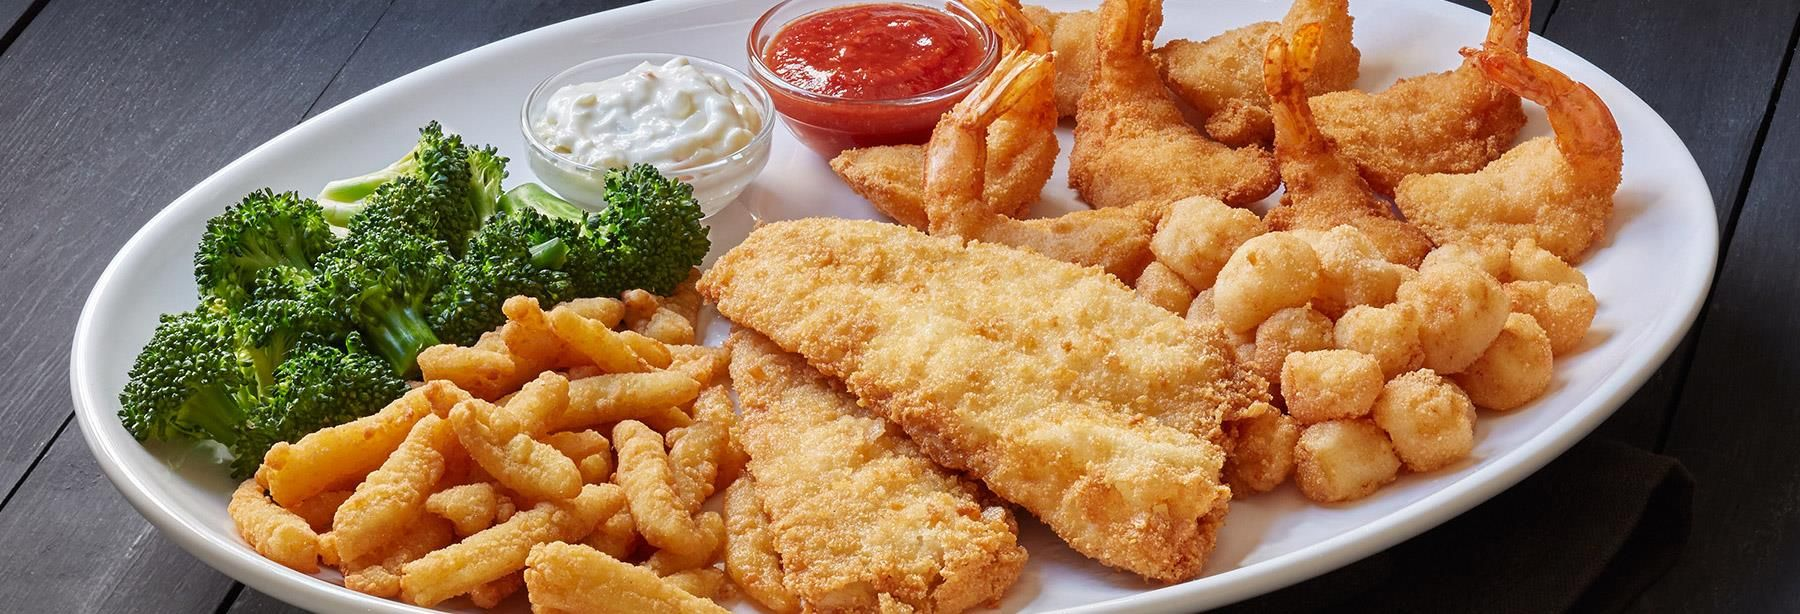 Red Lobster's Admiral's Feast contains 1,420 calories and